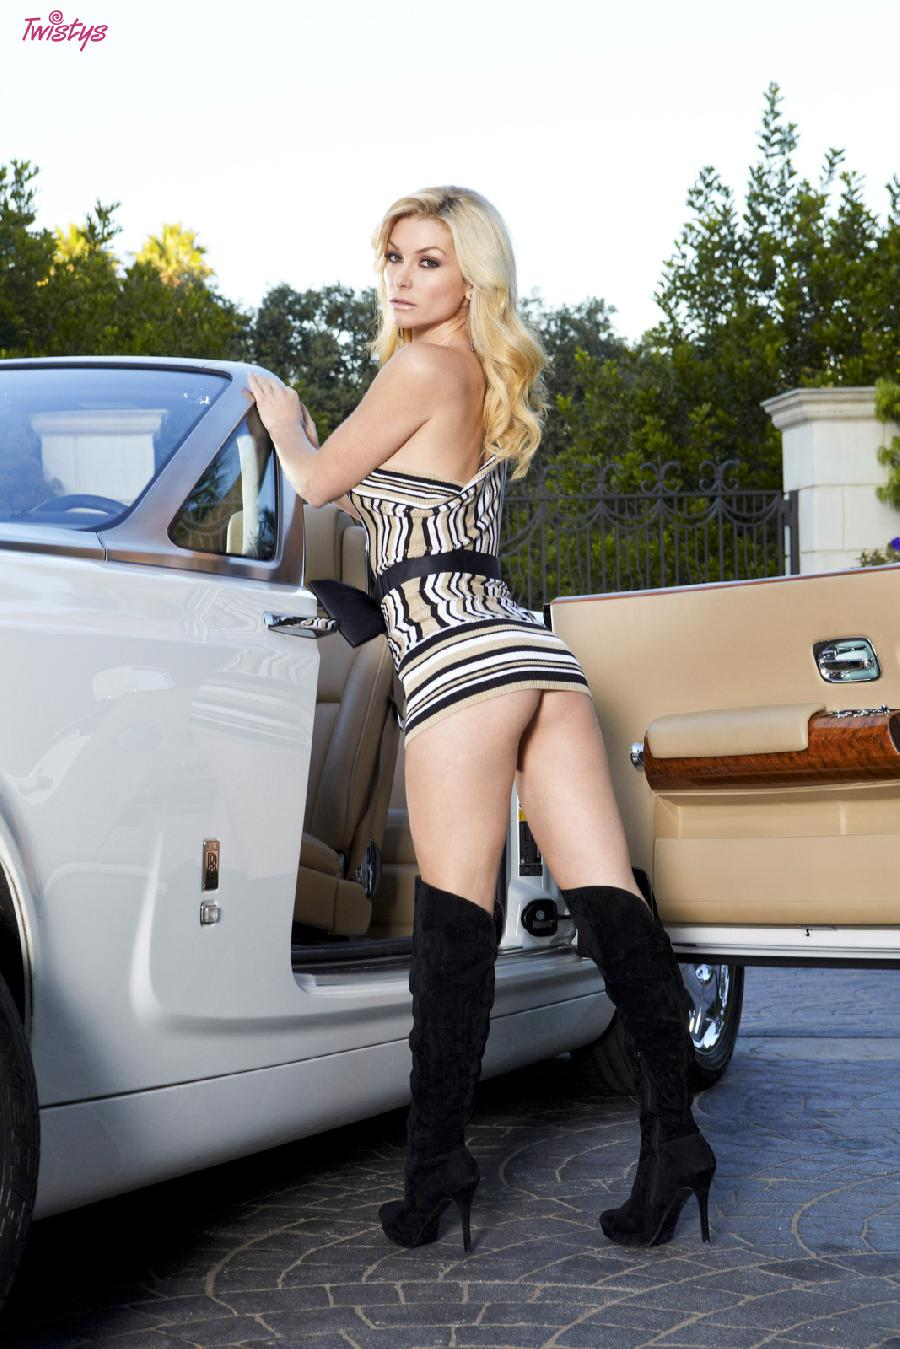 Heather Vandeven wanna catch a ride - 1